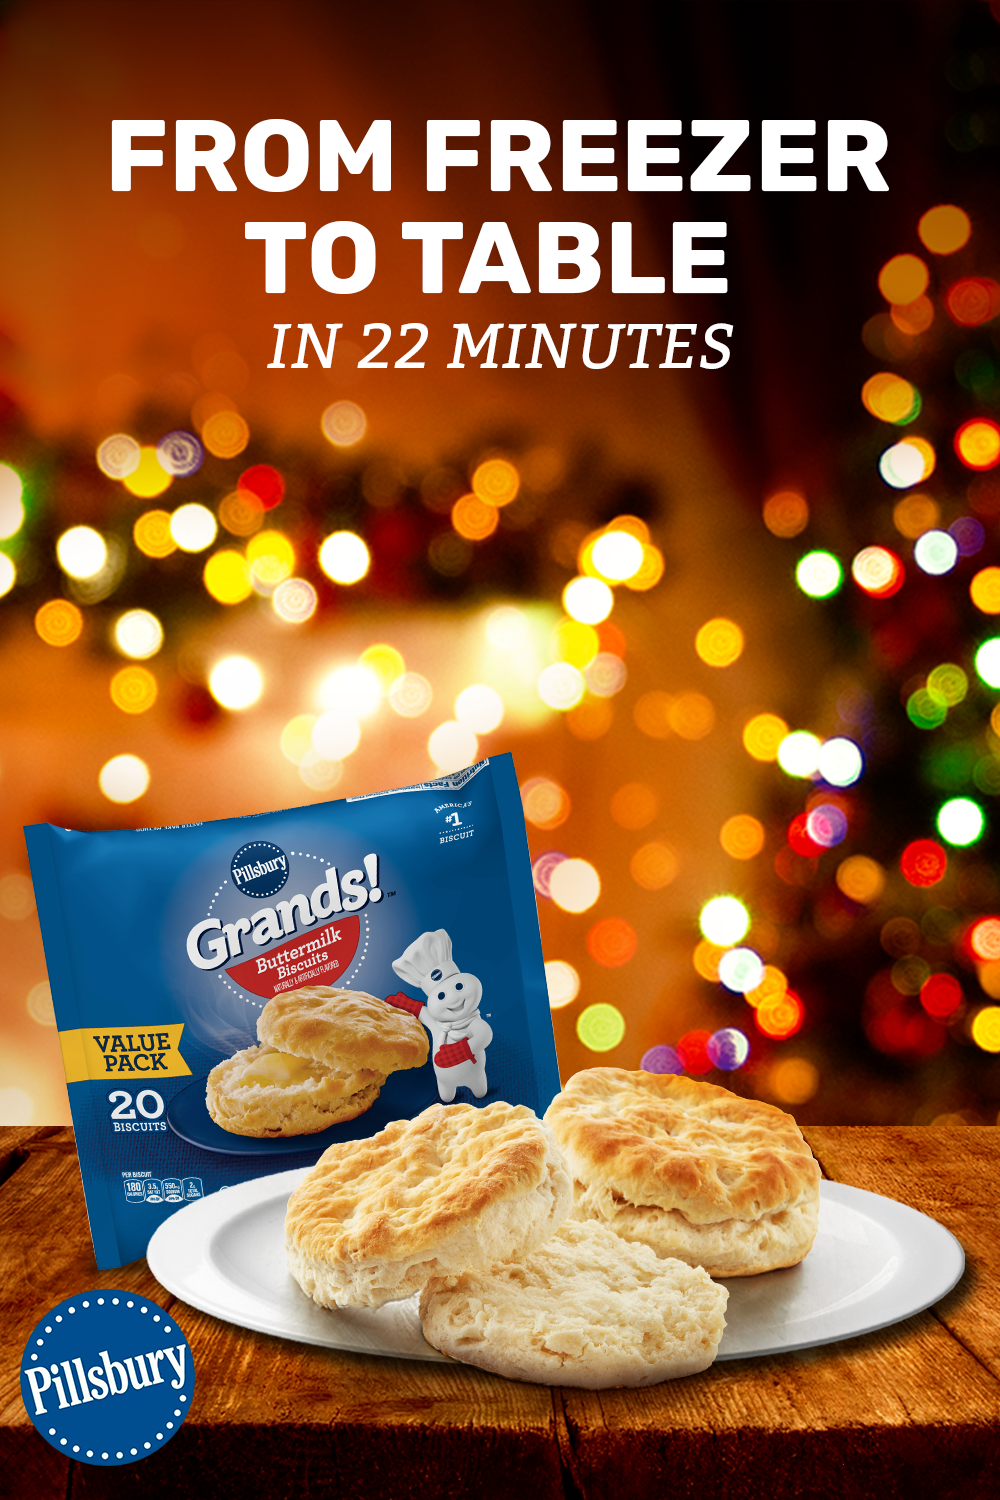 Pillsbury Grands Buttermilk Frozen Biscuits Are A Quick And Easy Way To Add A Delicious Side To Frozen Biscuits Pillsbury Frozen Biscuits Food Network Recipes